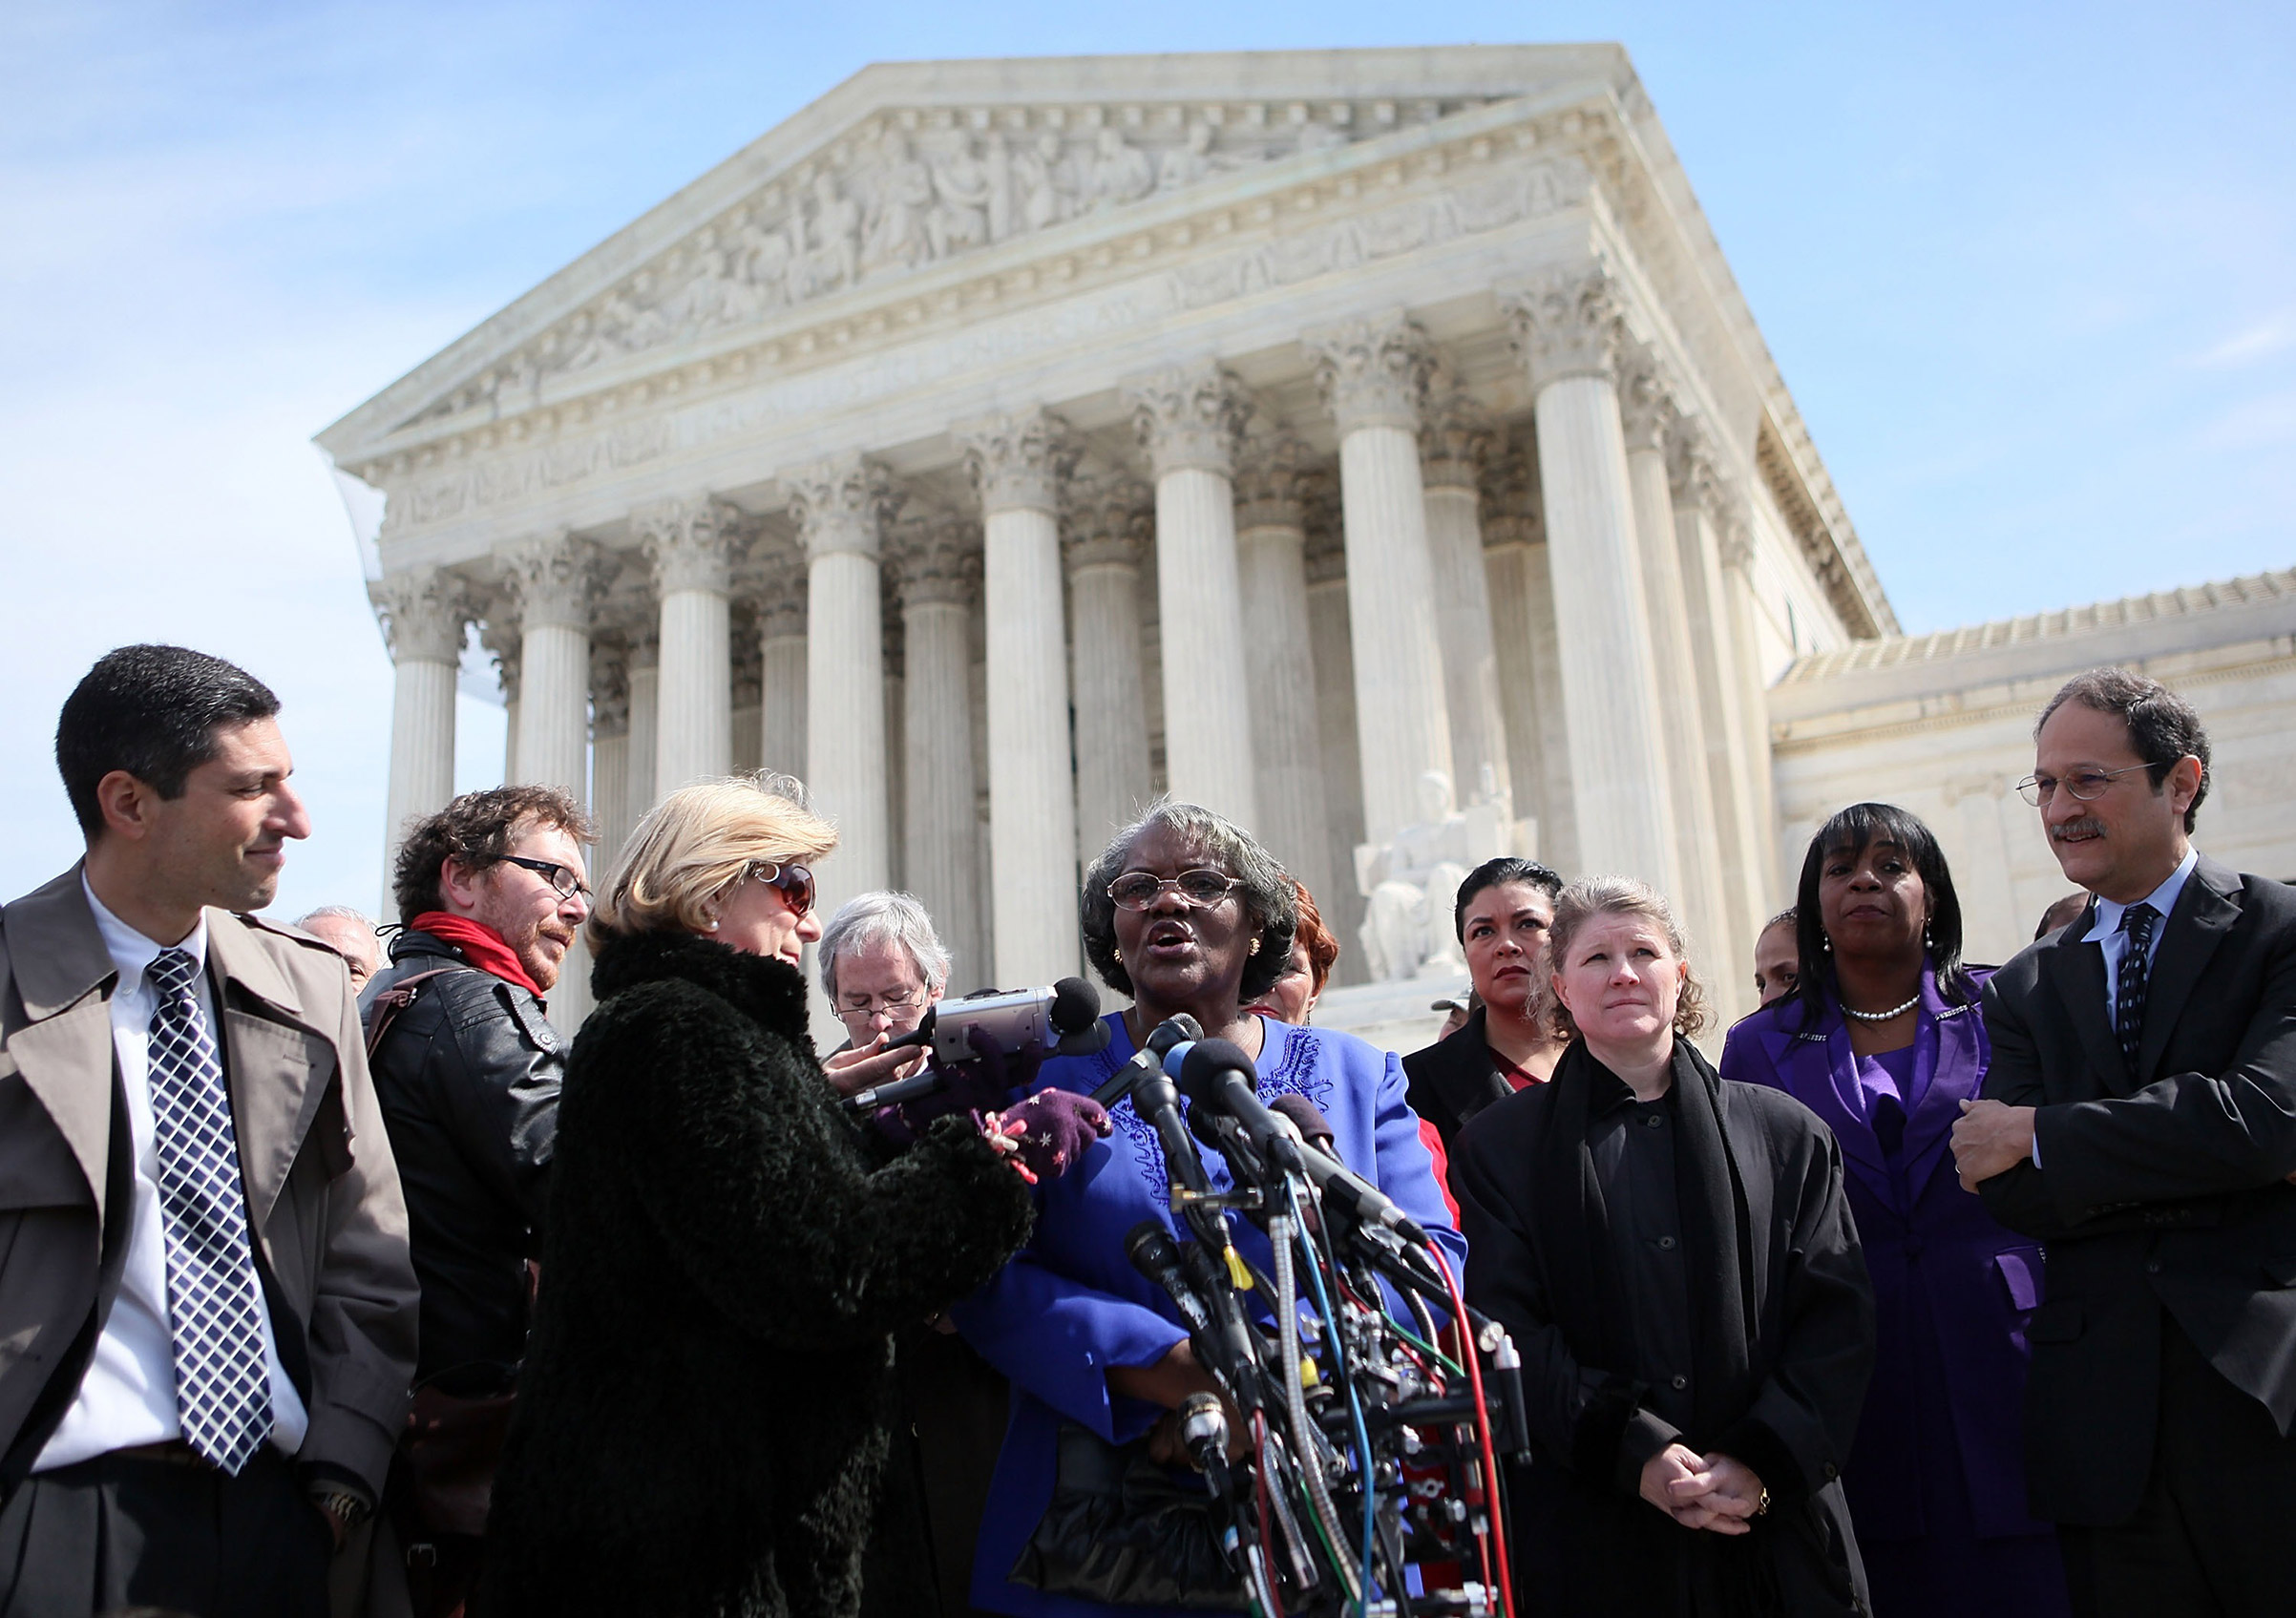 Betty Dukes, the lead plaintiff in the original class action, speaks in front of the Supreme Court in 2011